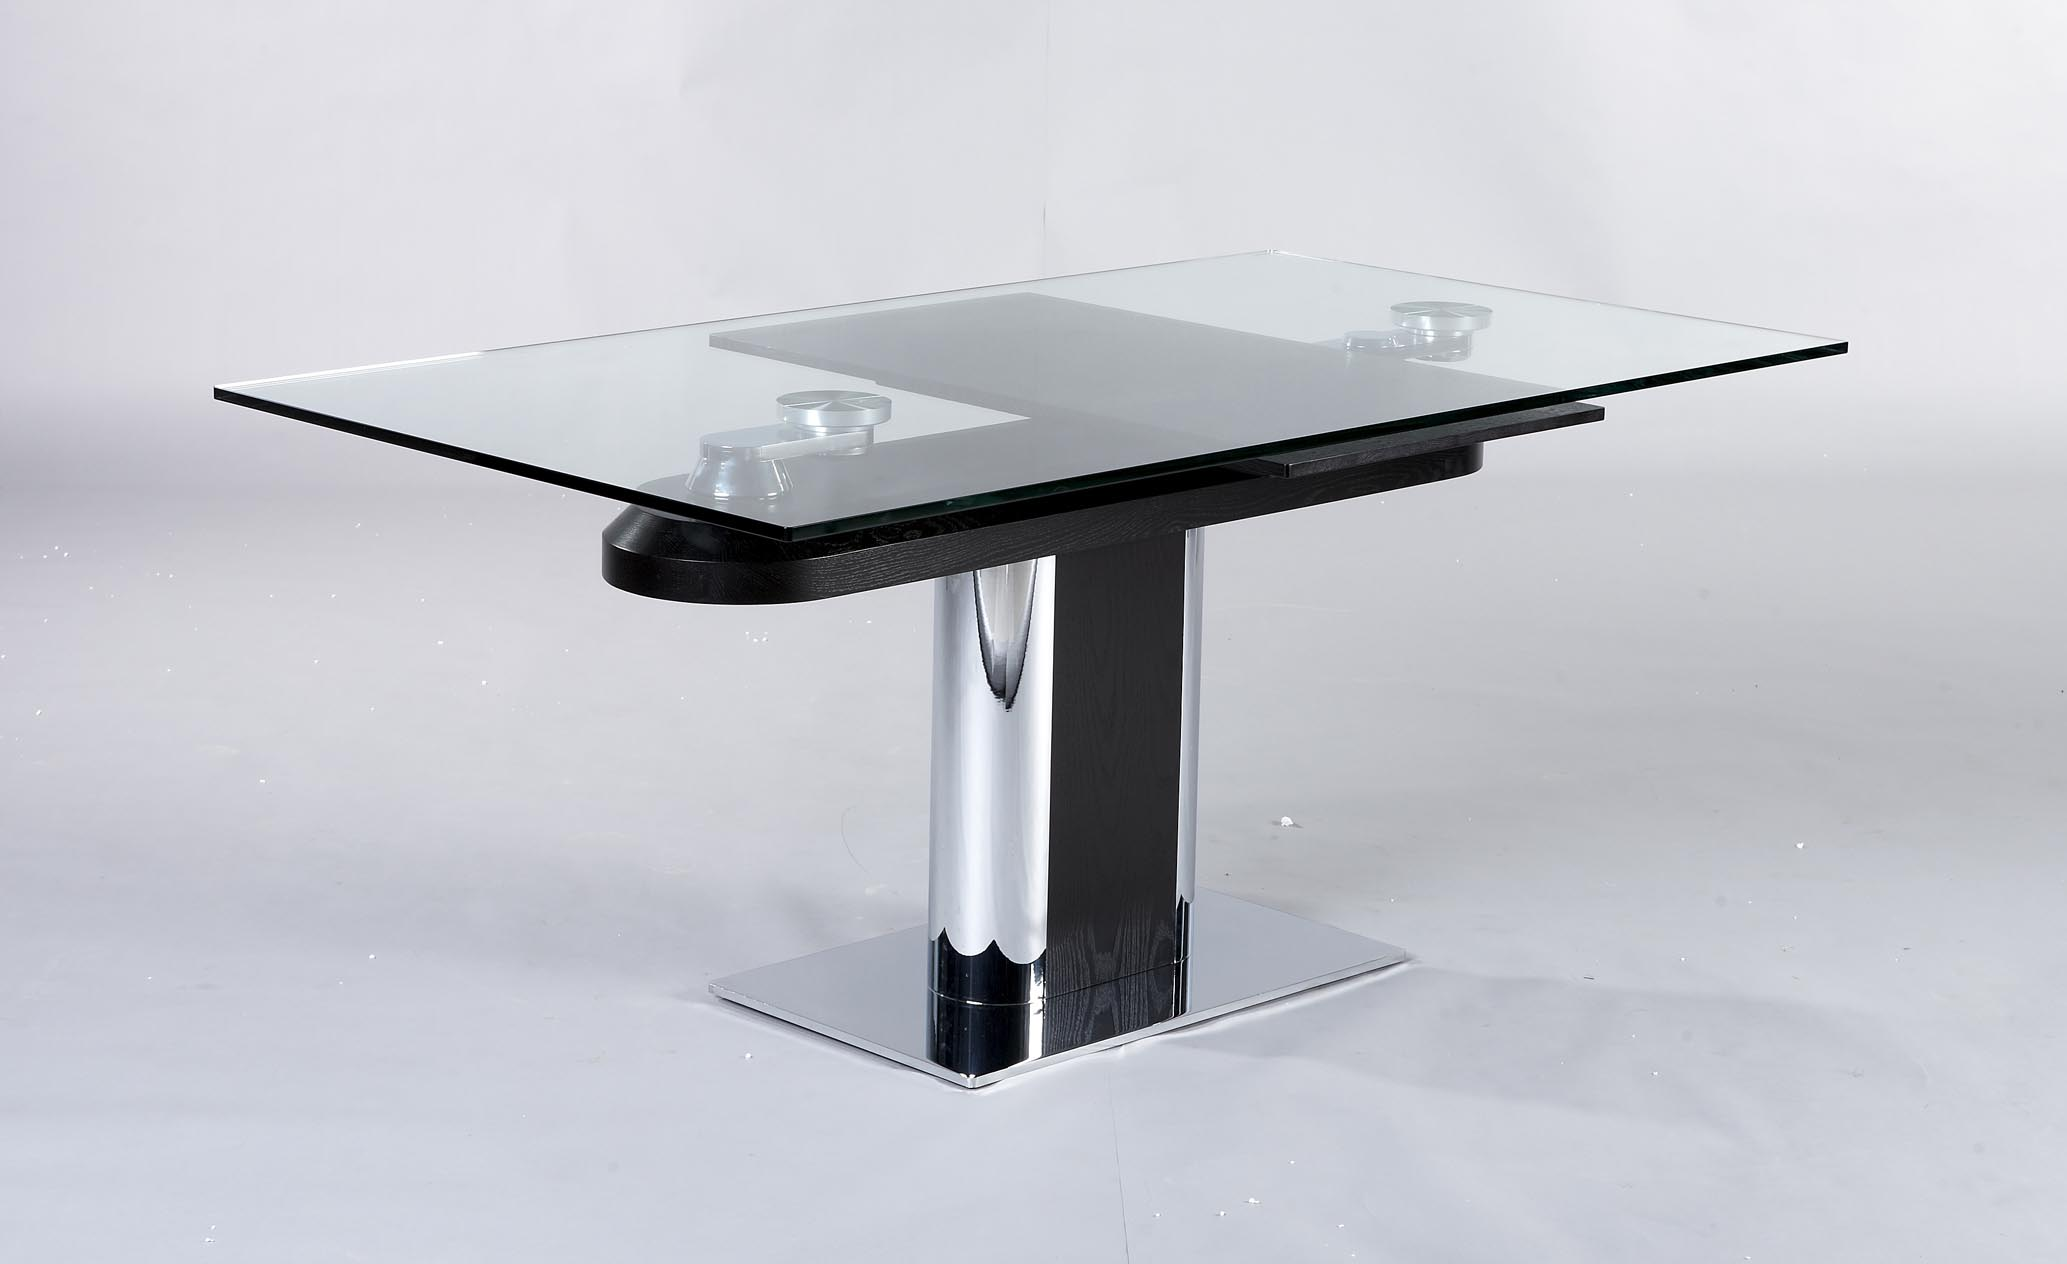 Tables en verre avec rallonges for Table en verre design salle a manger